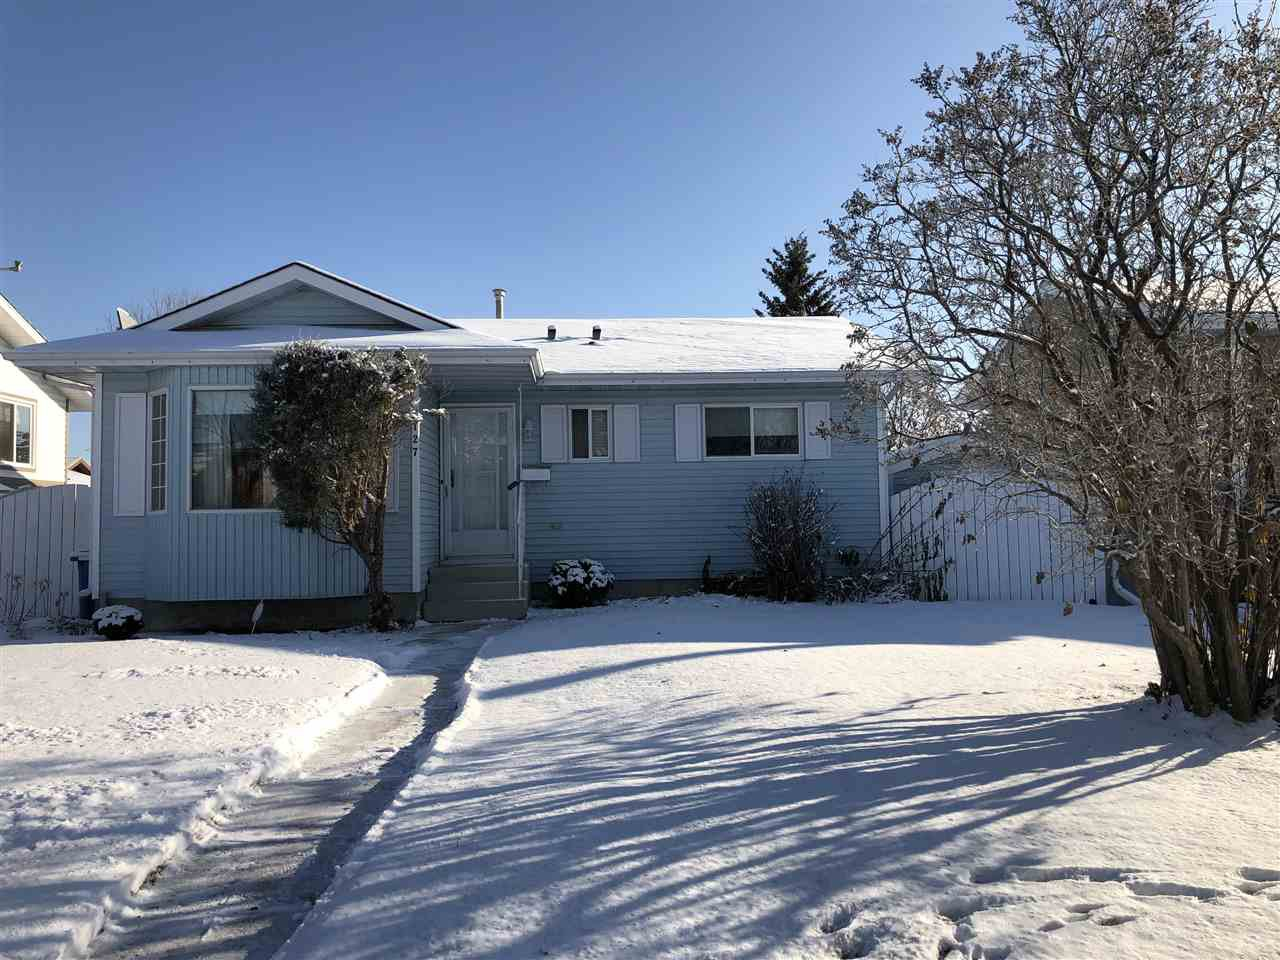 Main Photo: 127 Cameron Crescent: Wetaskiwin House for sale : MLS®# E4157765